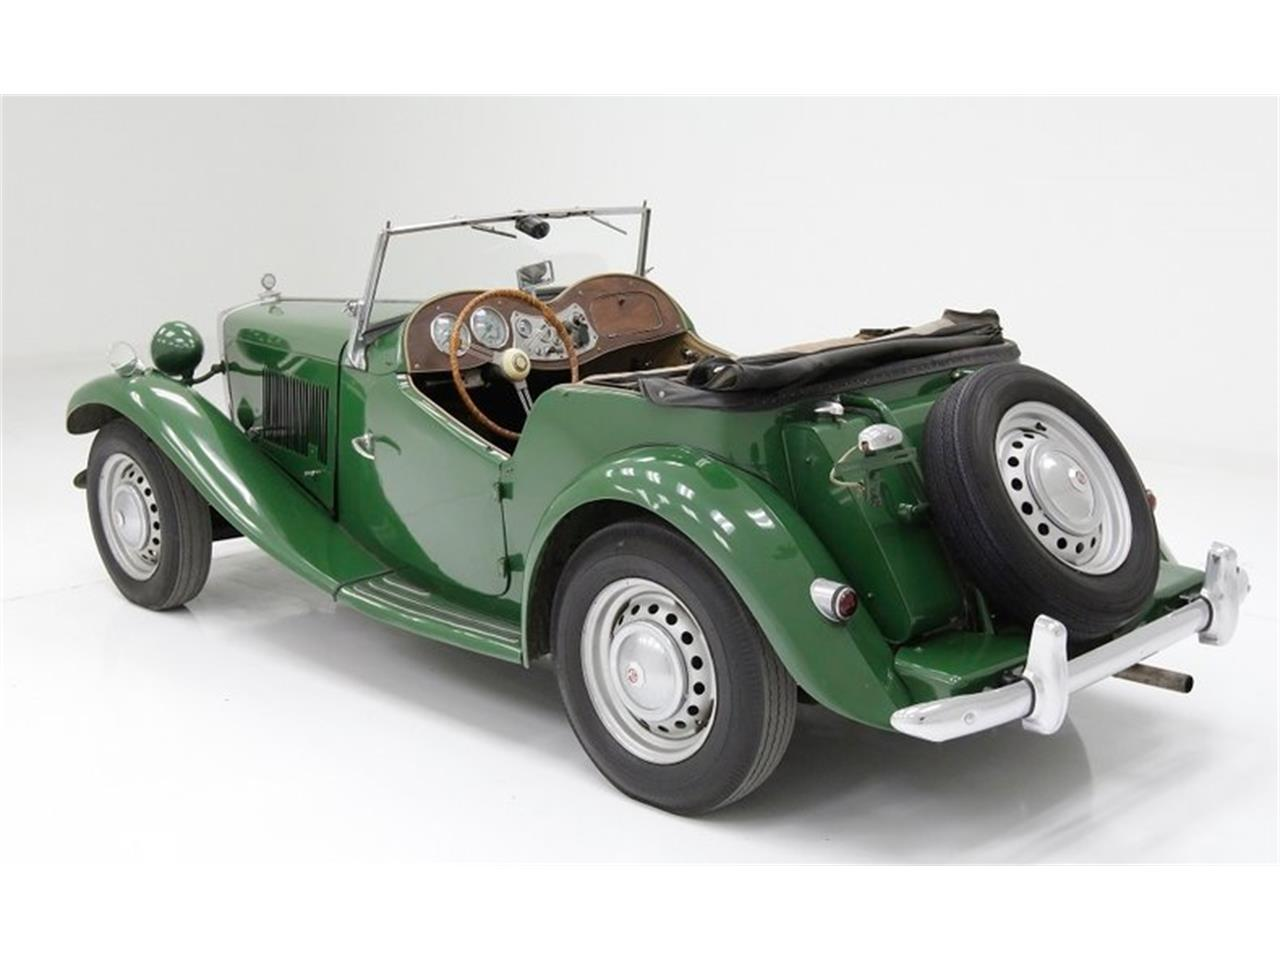 Large Picture of 1953 MG TD located in Pennsylvania - $20,000.00 Offered by Classic Auto Mall - PY07